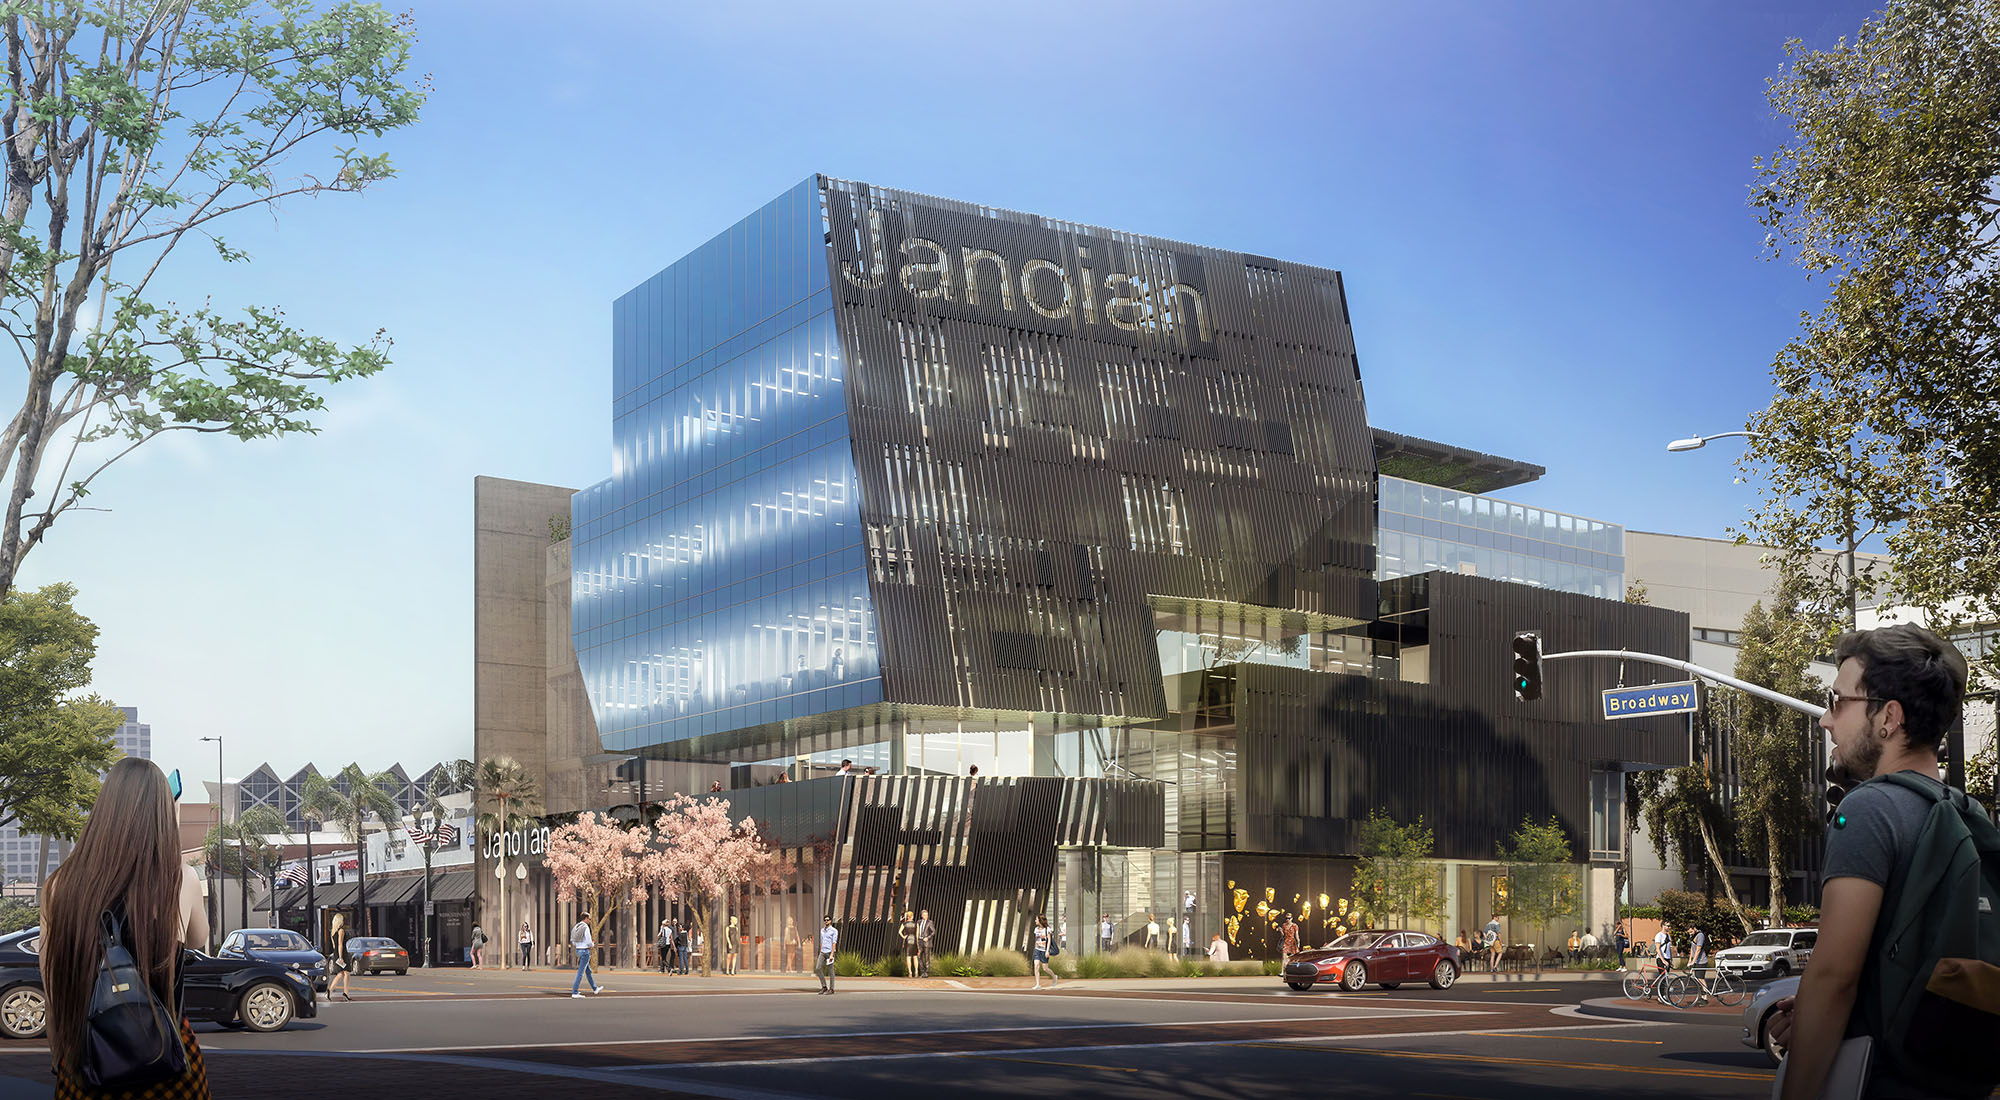 Rendering of a new tower in Glendale with a dynamic, split facade